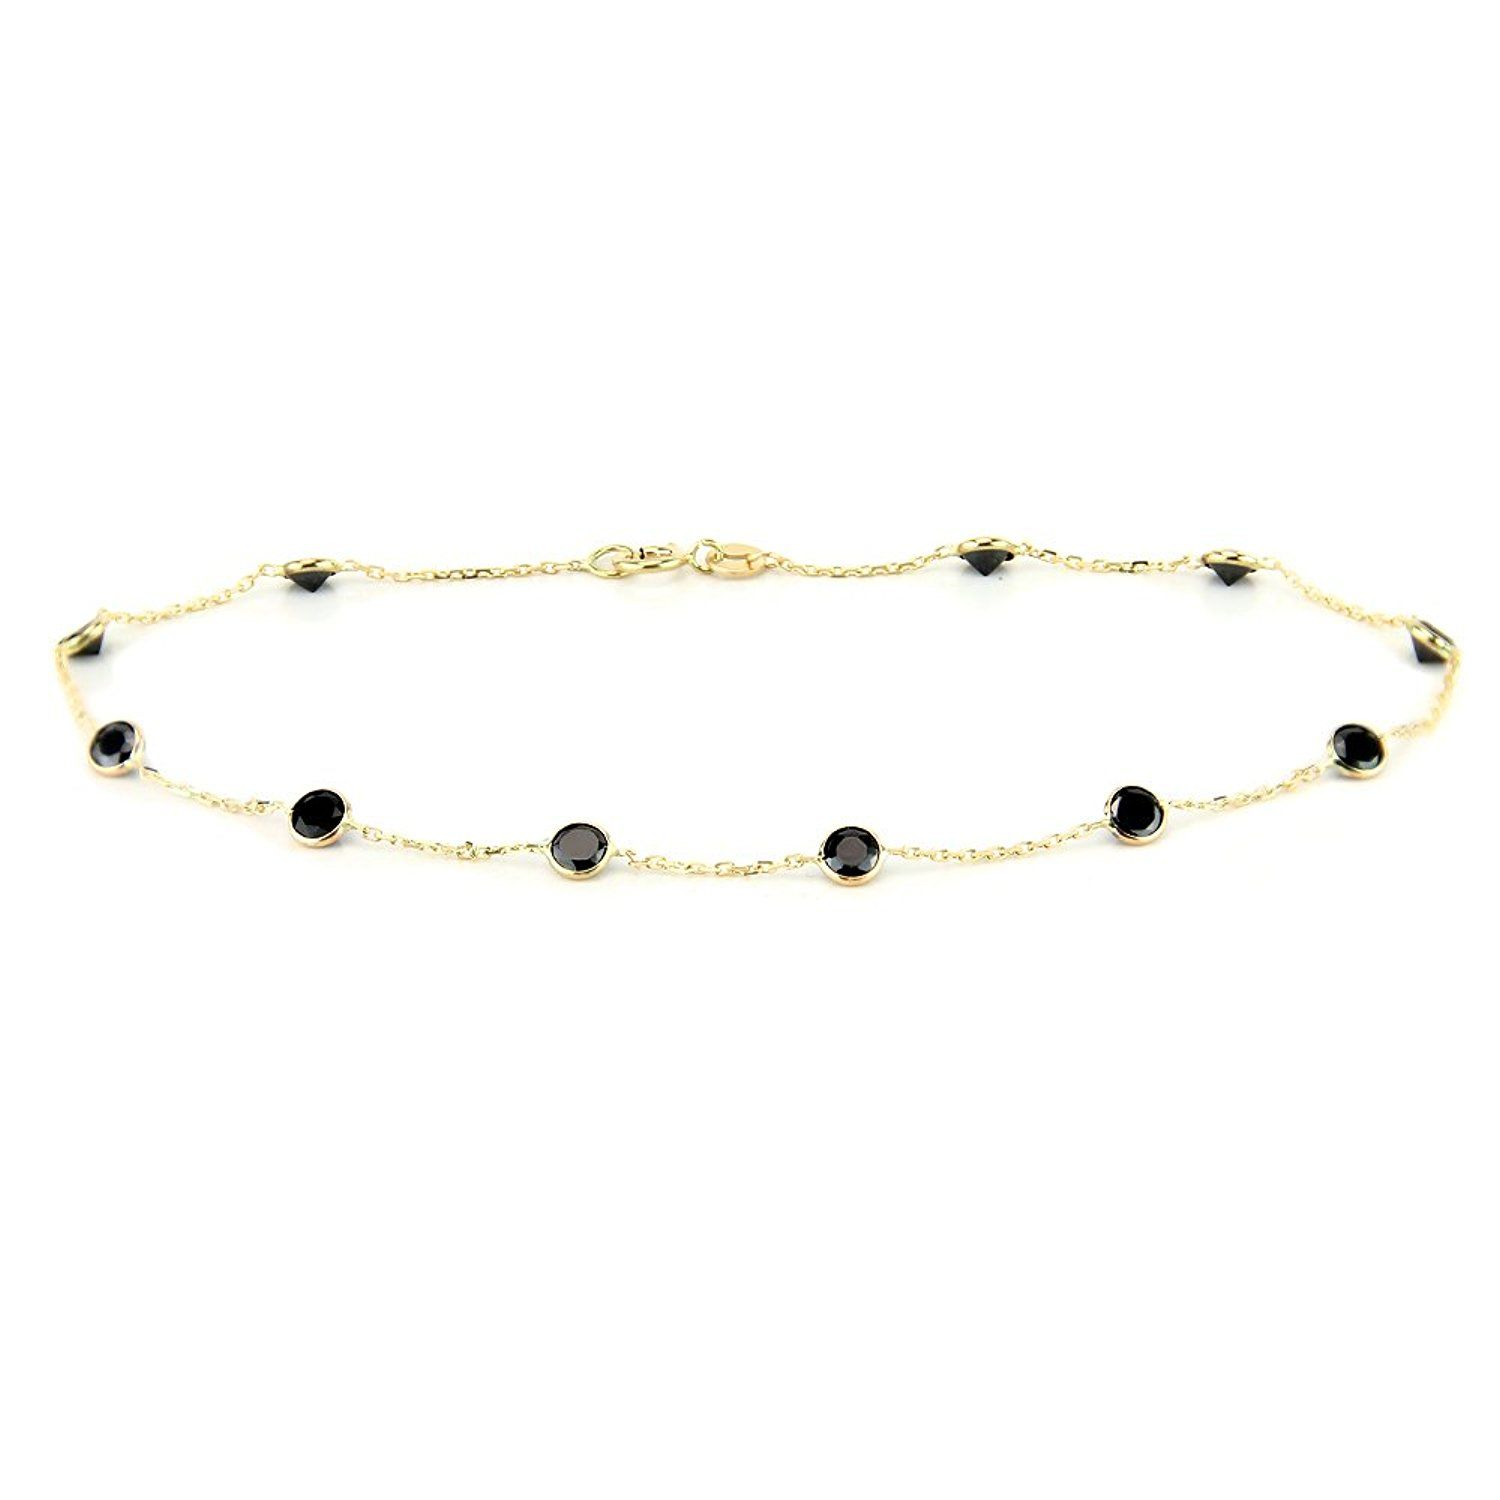 com product cubic station dhgate crystal tone from chain steel stainless gold dainty anklet zirconia of made